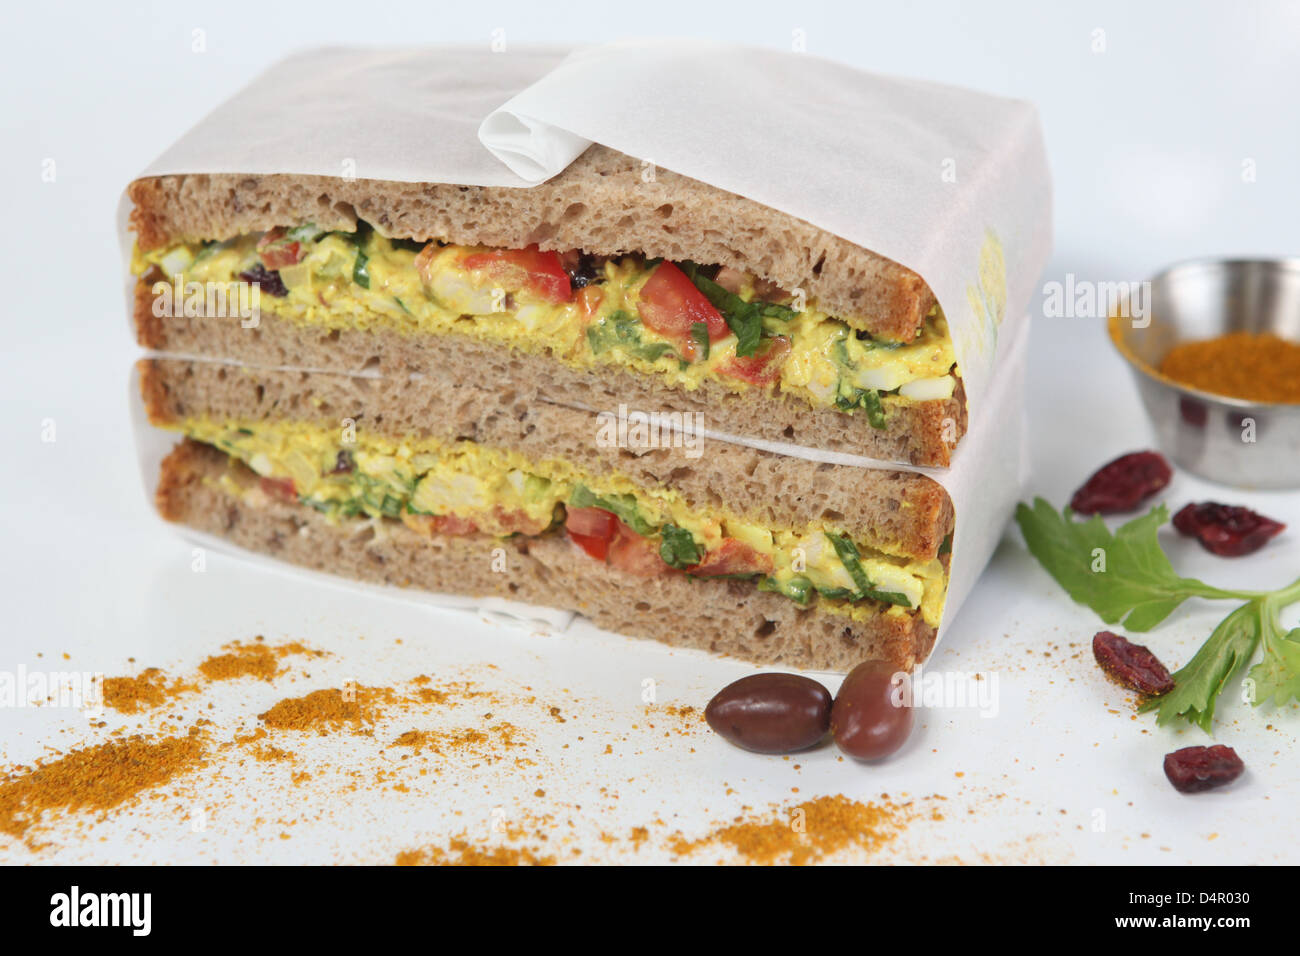 Egg Sandwich - Stock Image